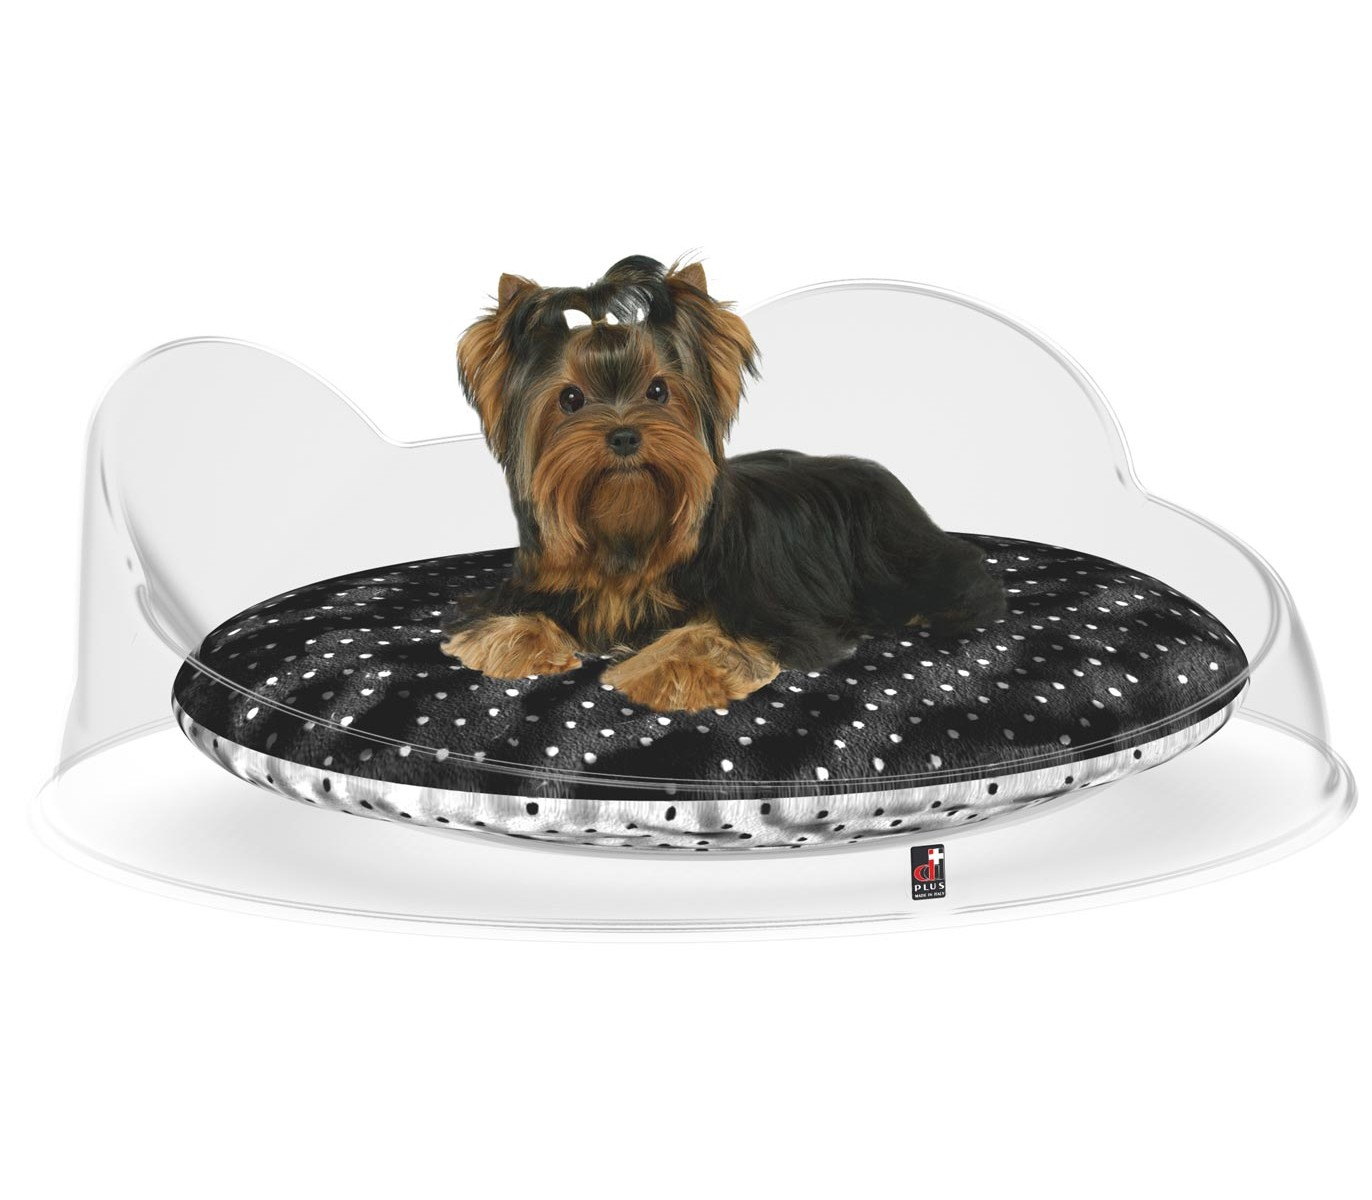 Cucce Design Per Cani exclusive luxury small dog and cat bed, with designer